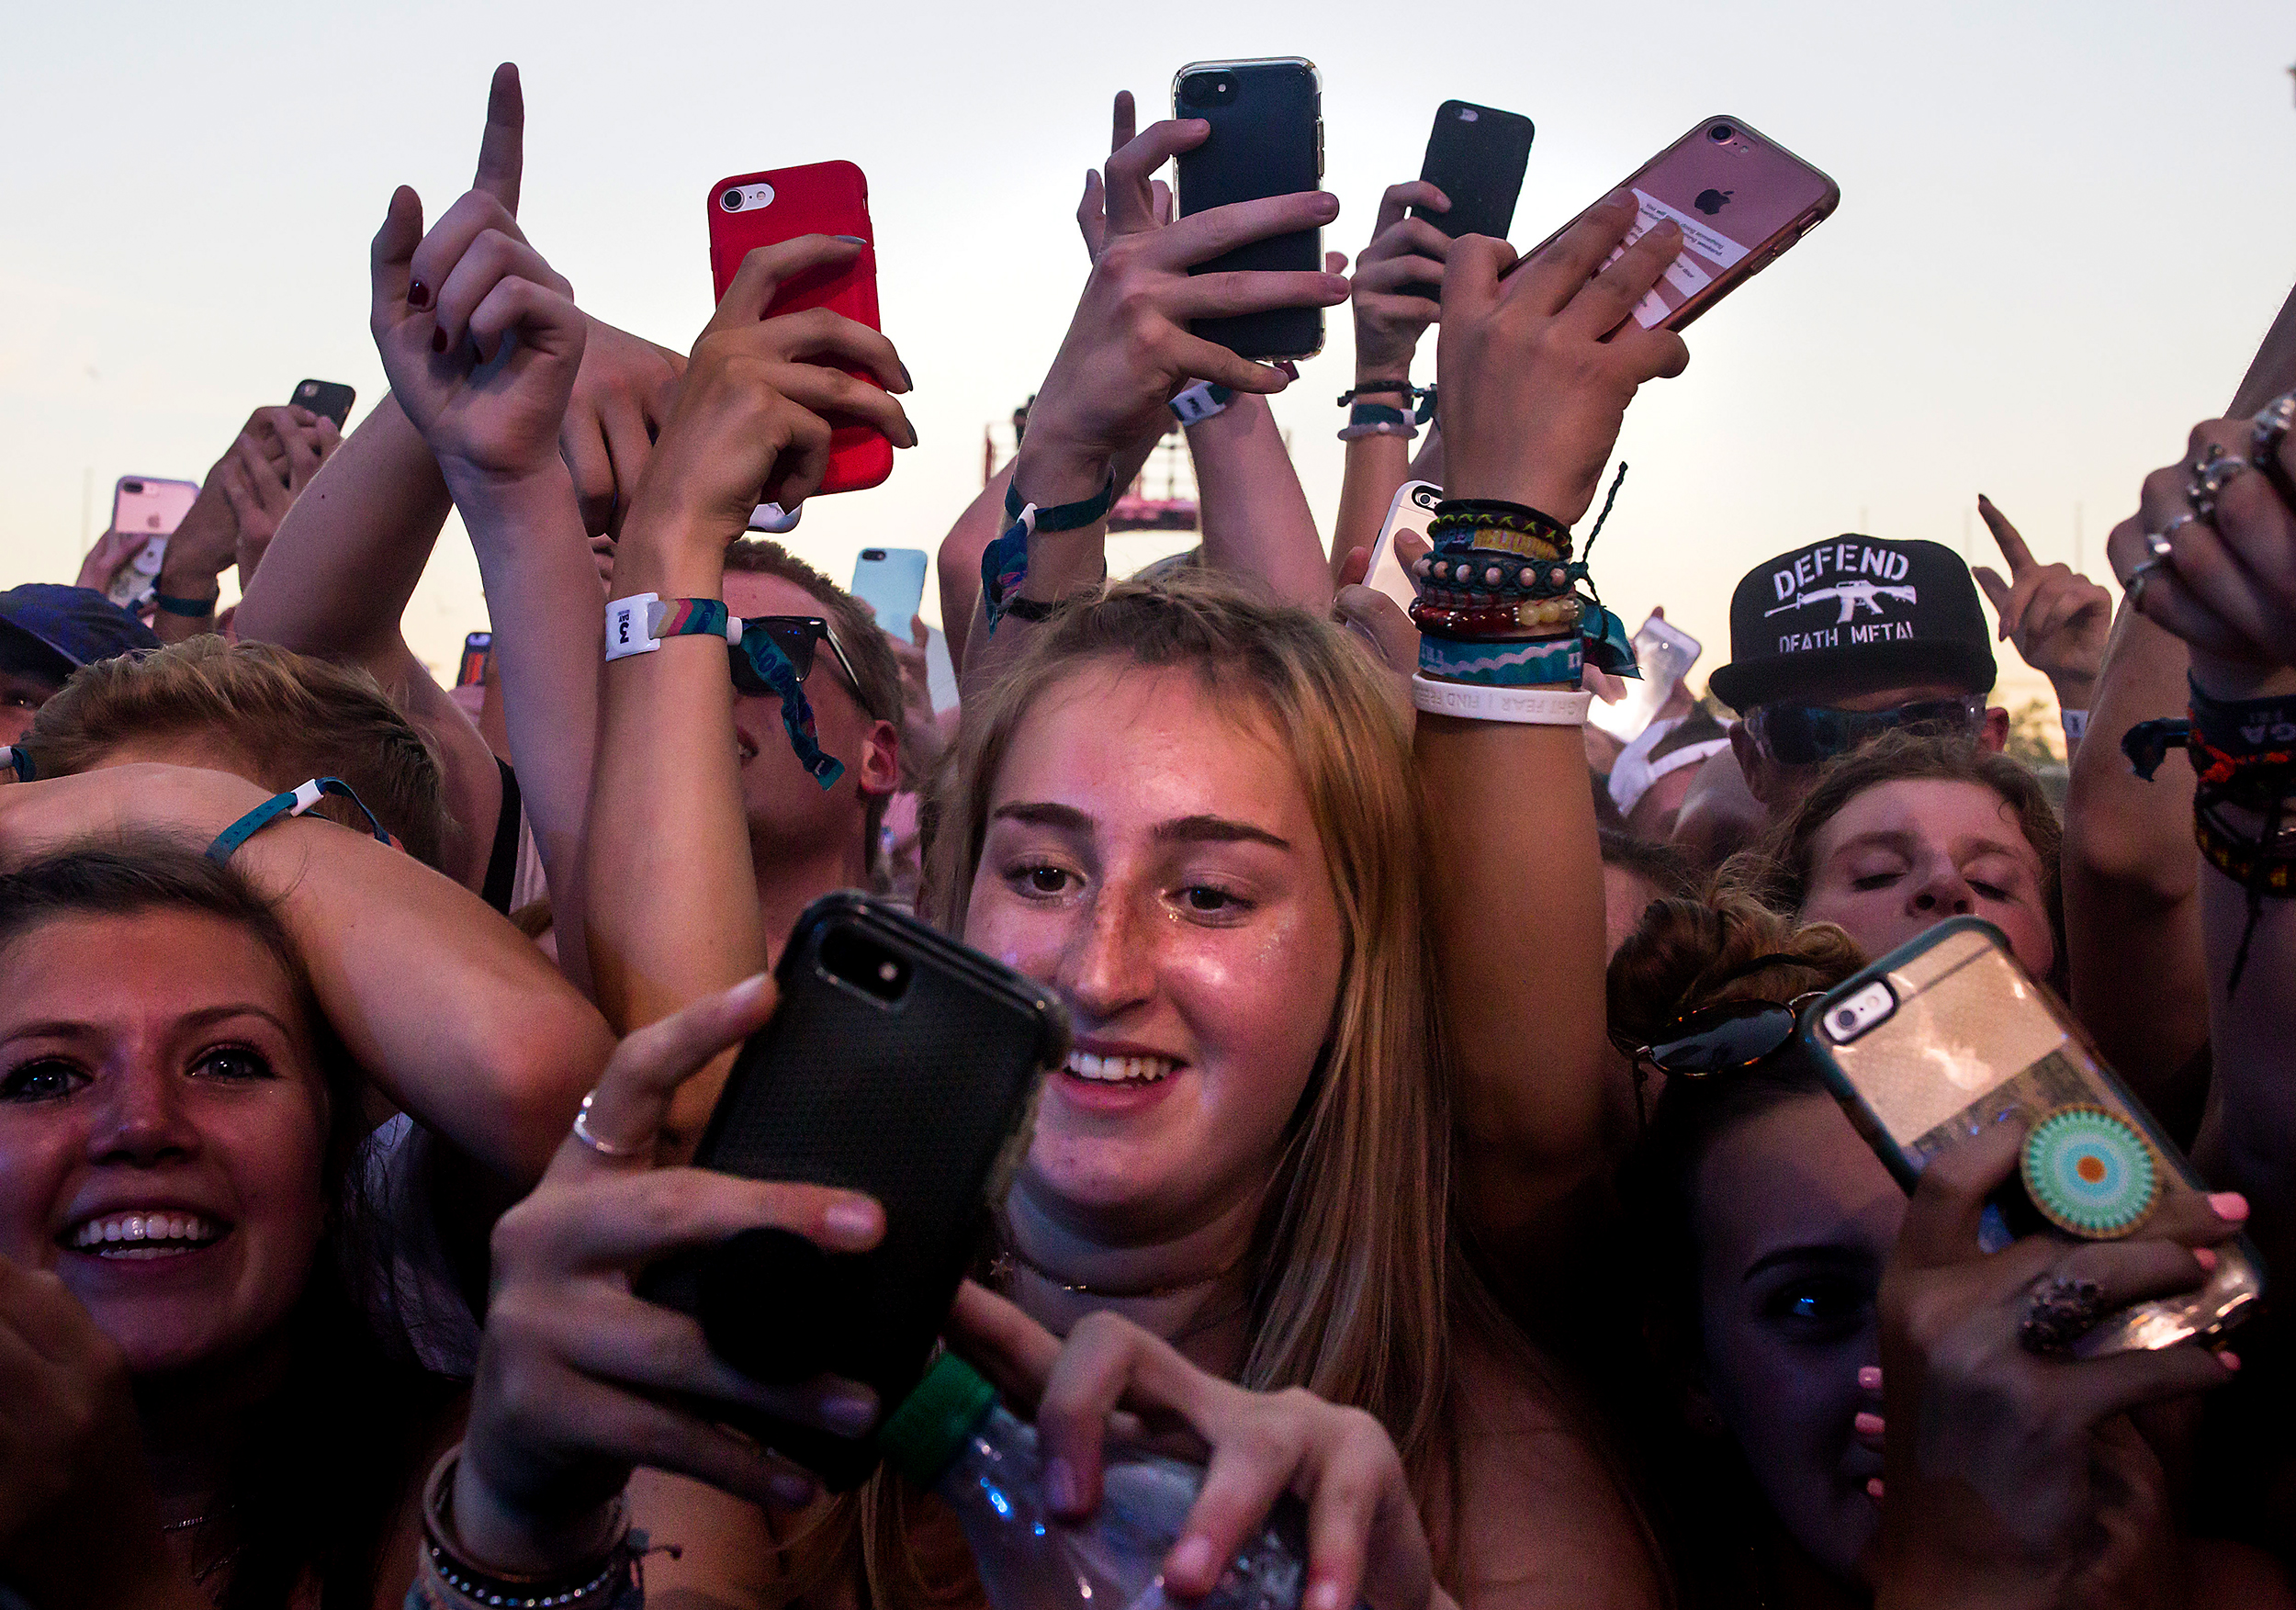 Young fans grip their iPhones as they wait for Foster the People to perform at Bumbershoot, Friday, Sept. 1, 2017. (Sy Bean / Seattle Refined)